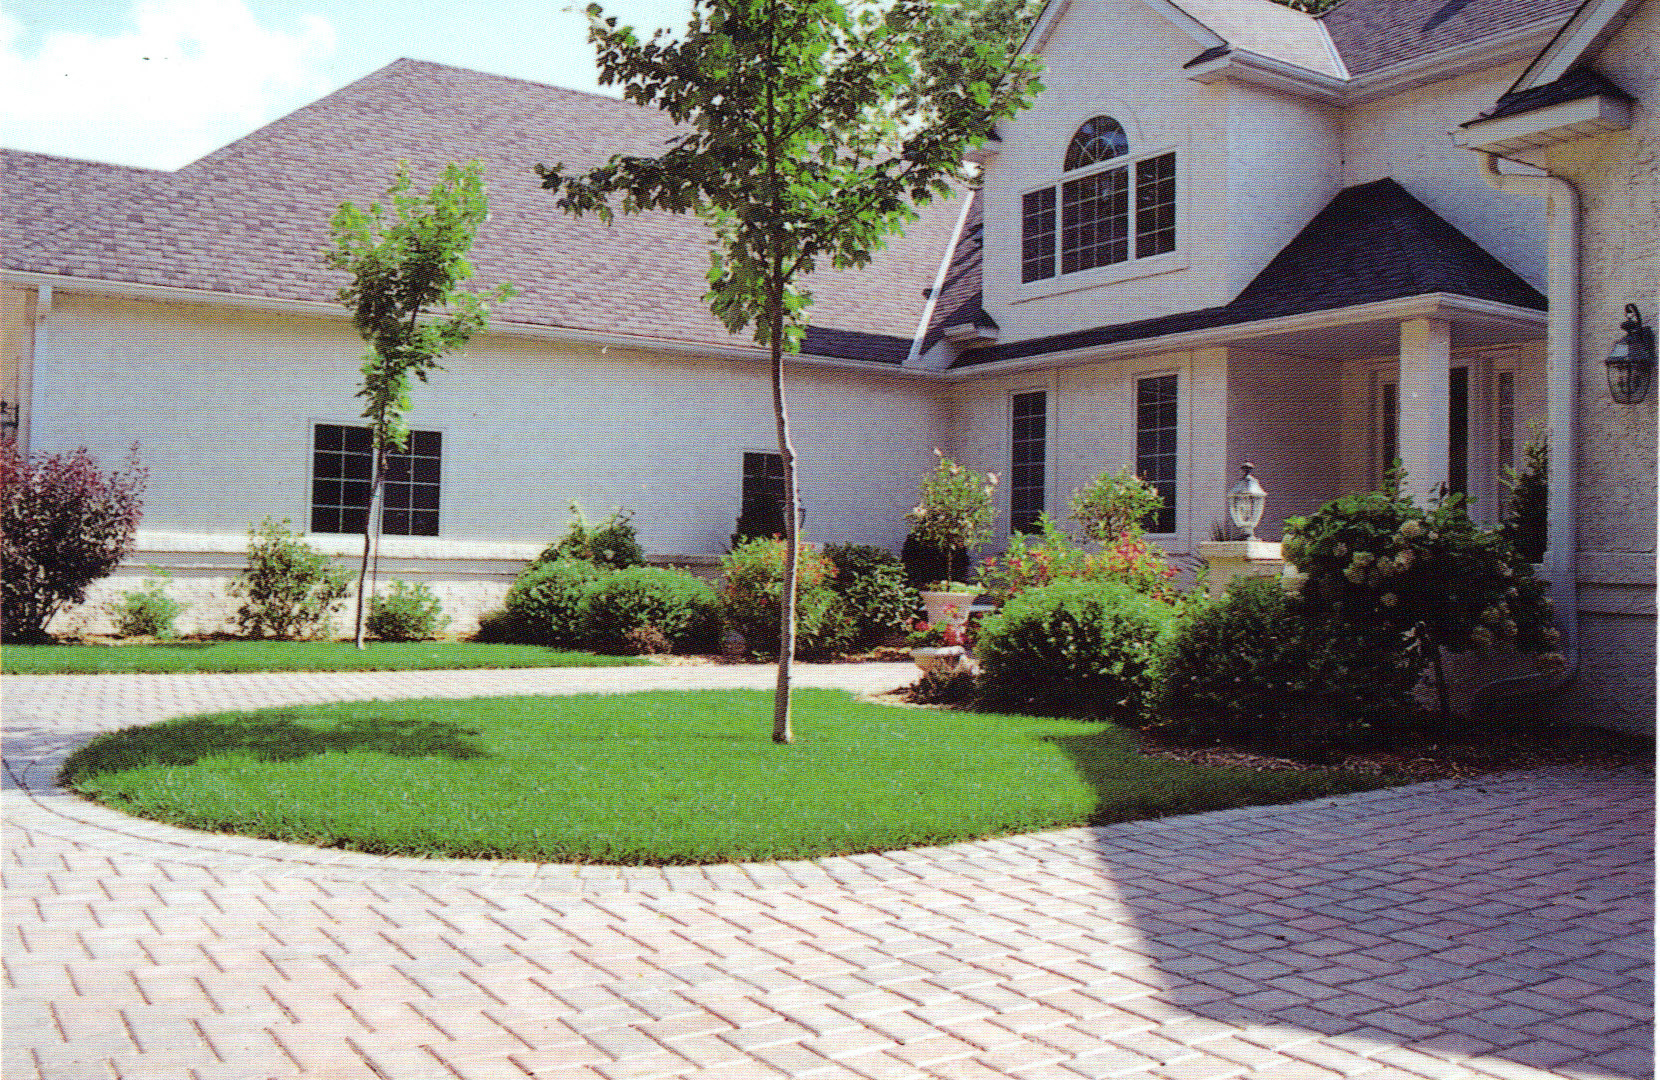 Paver Driveway and Complete Landscape